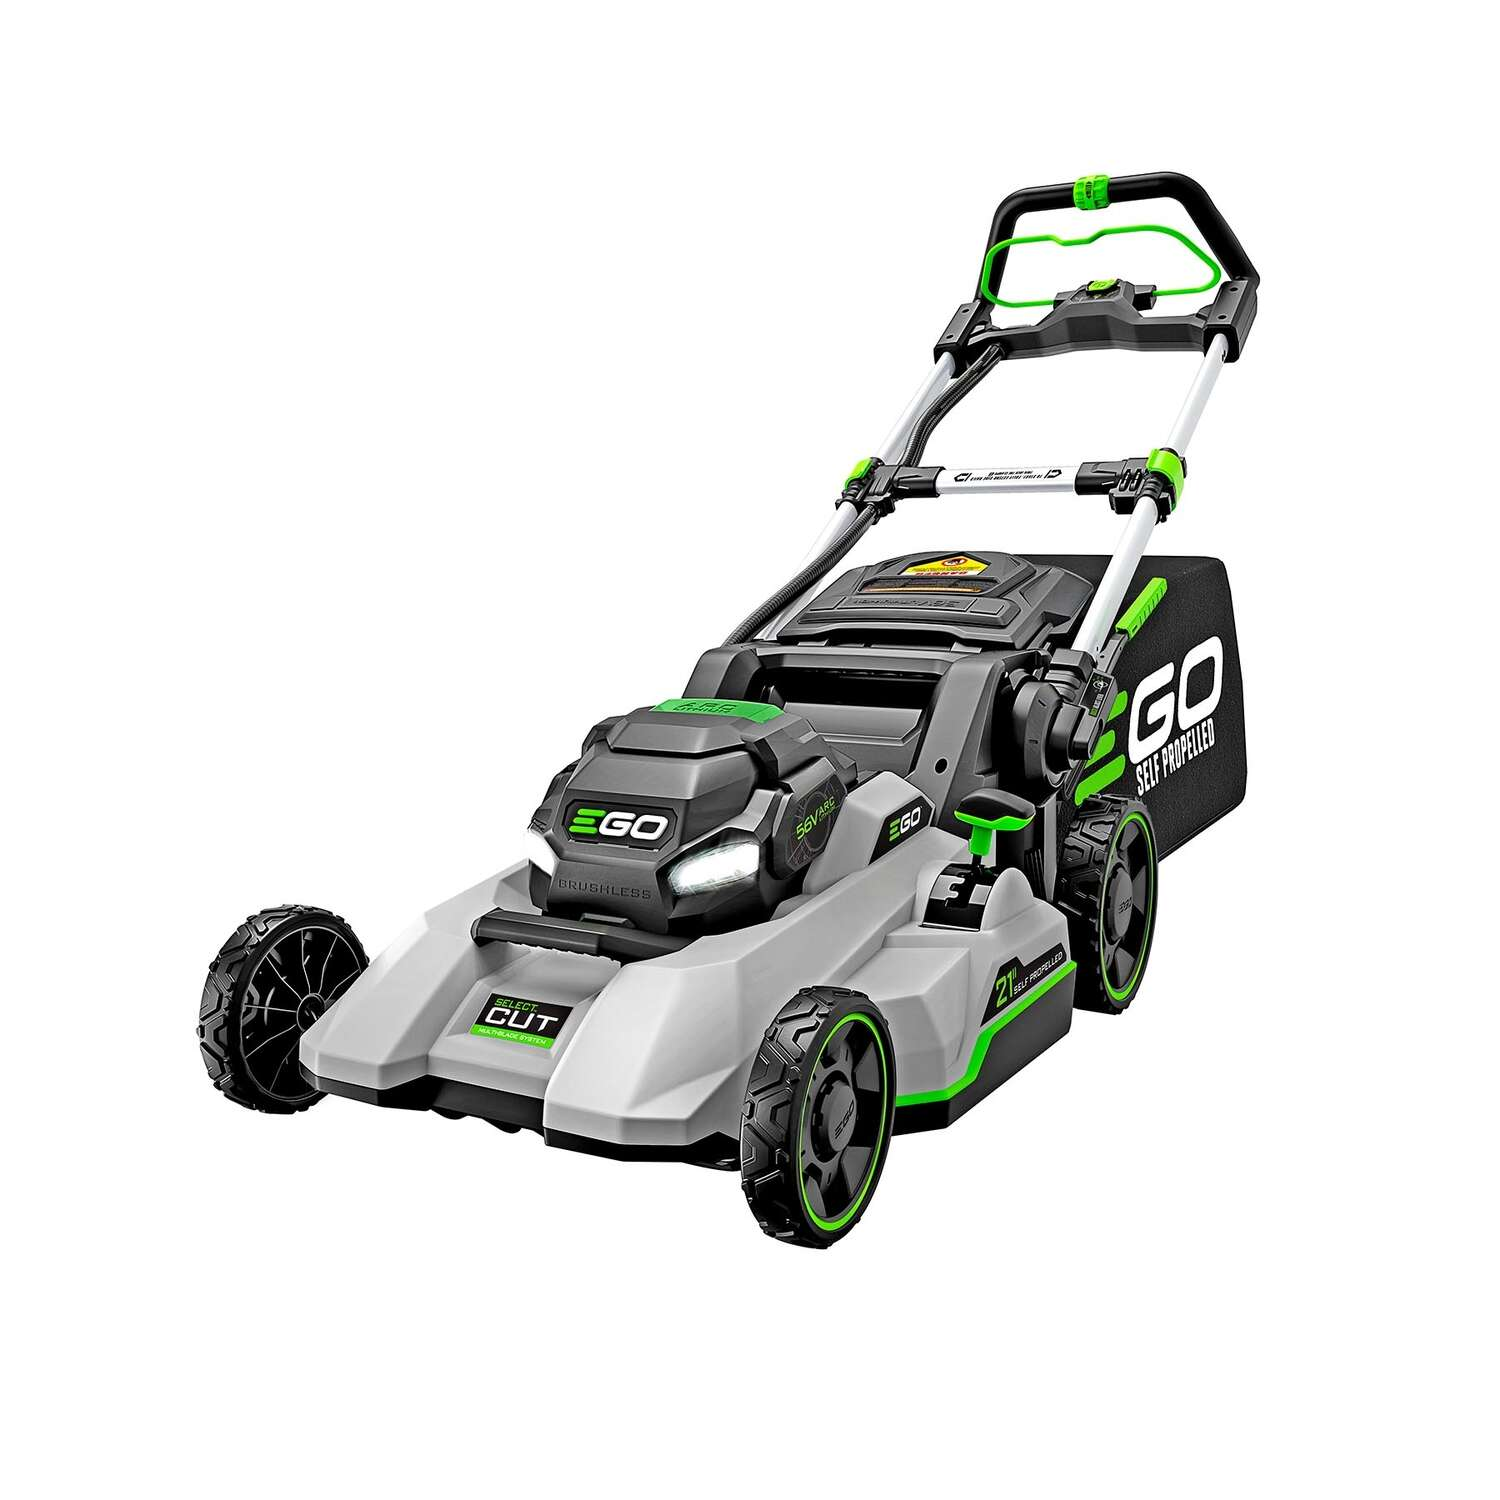 EGO  Select Cut  LM2135SP  21 in. 56 volt Battery  Self-Propelled  Lawn Mower Set